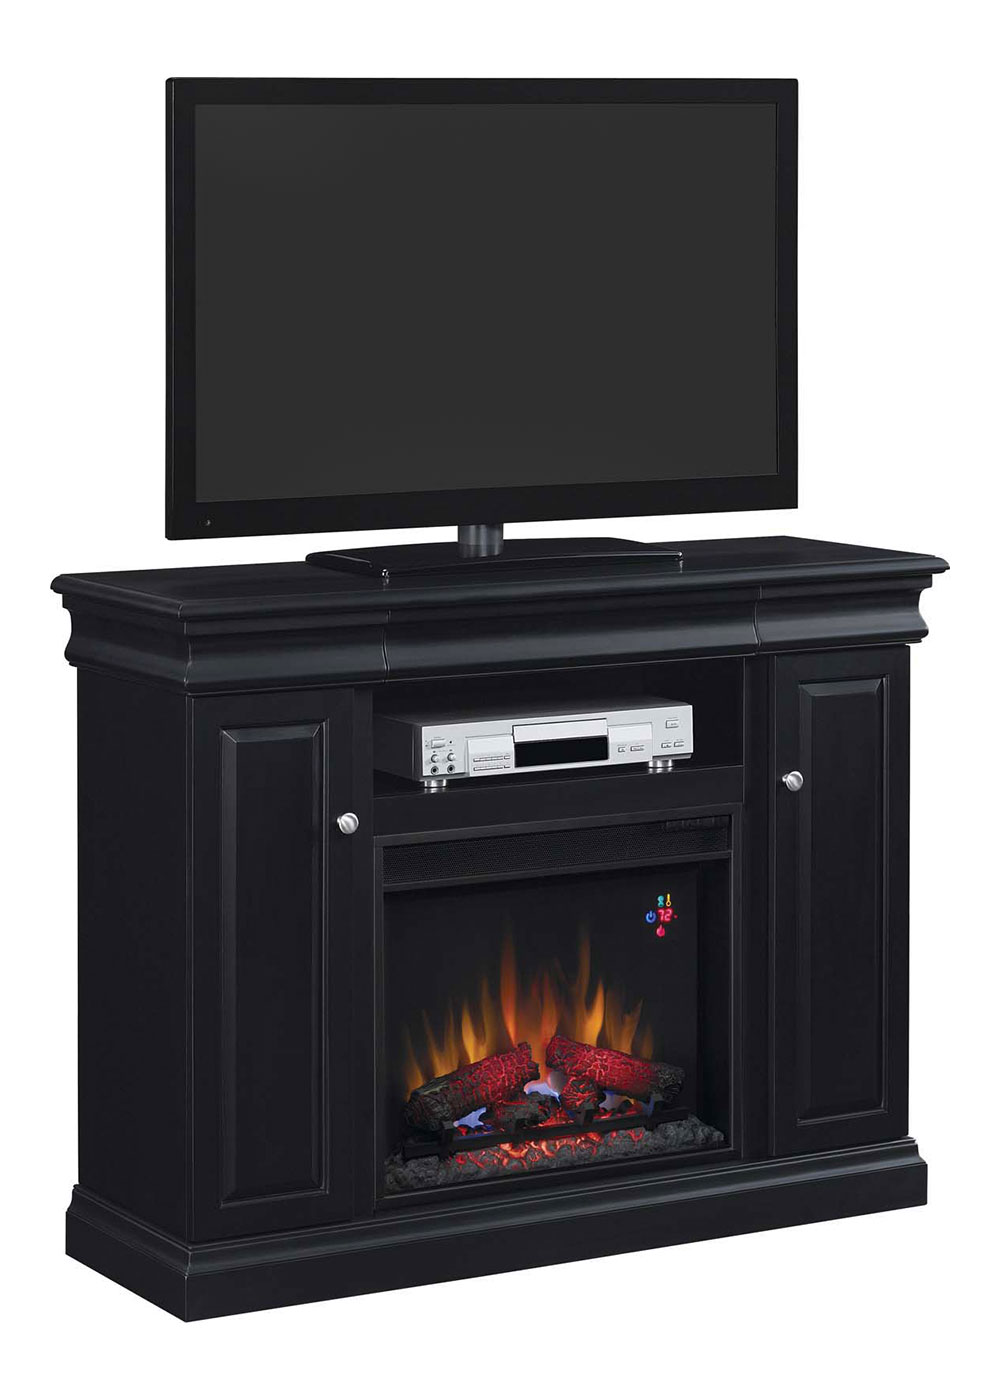 Louie Electric Fireplace Media Console In Black 23mm9643